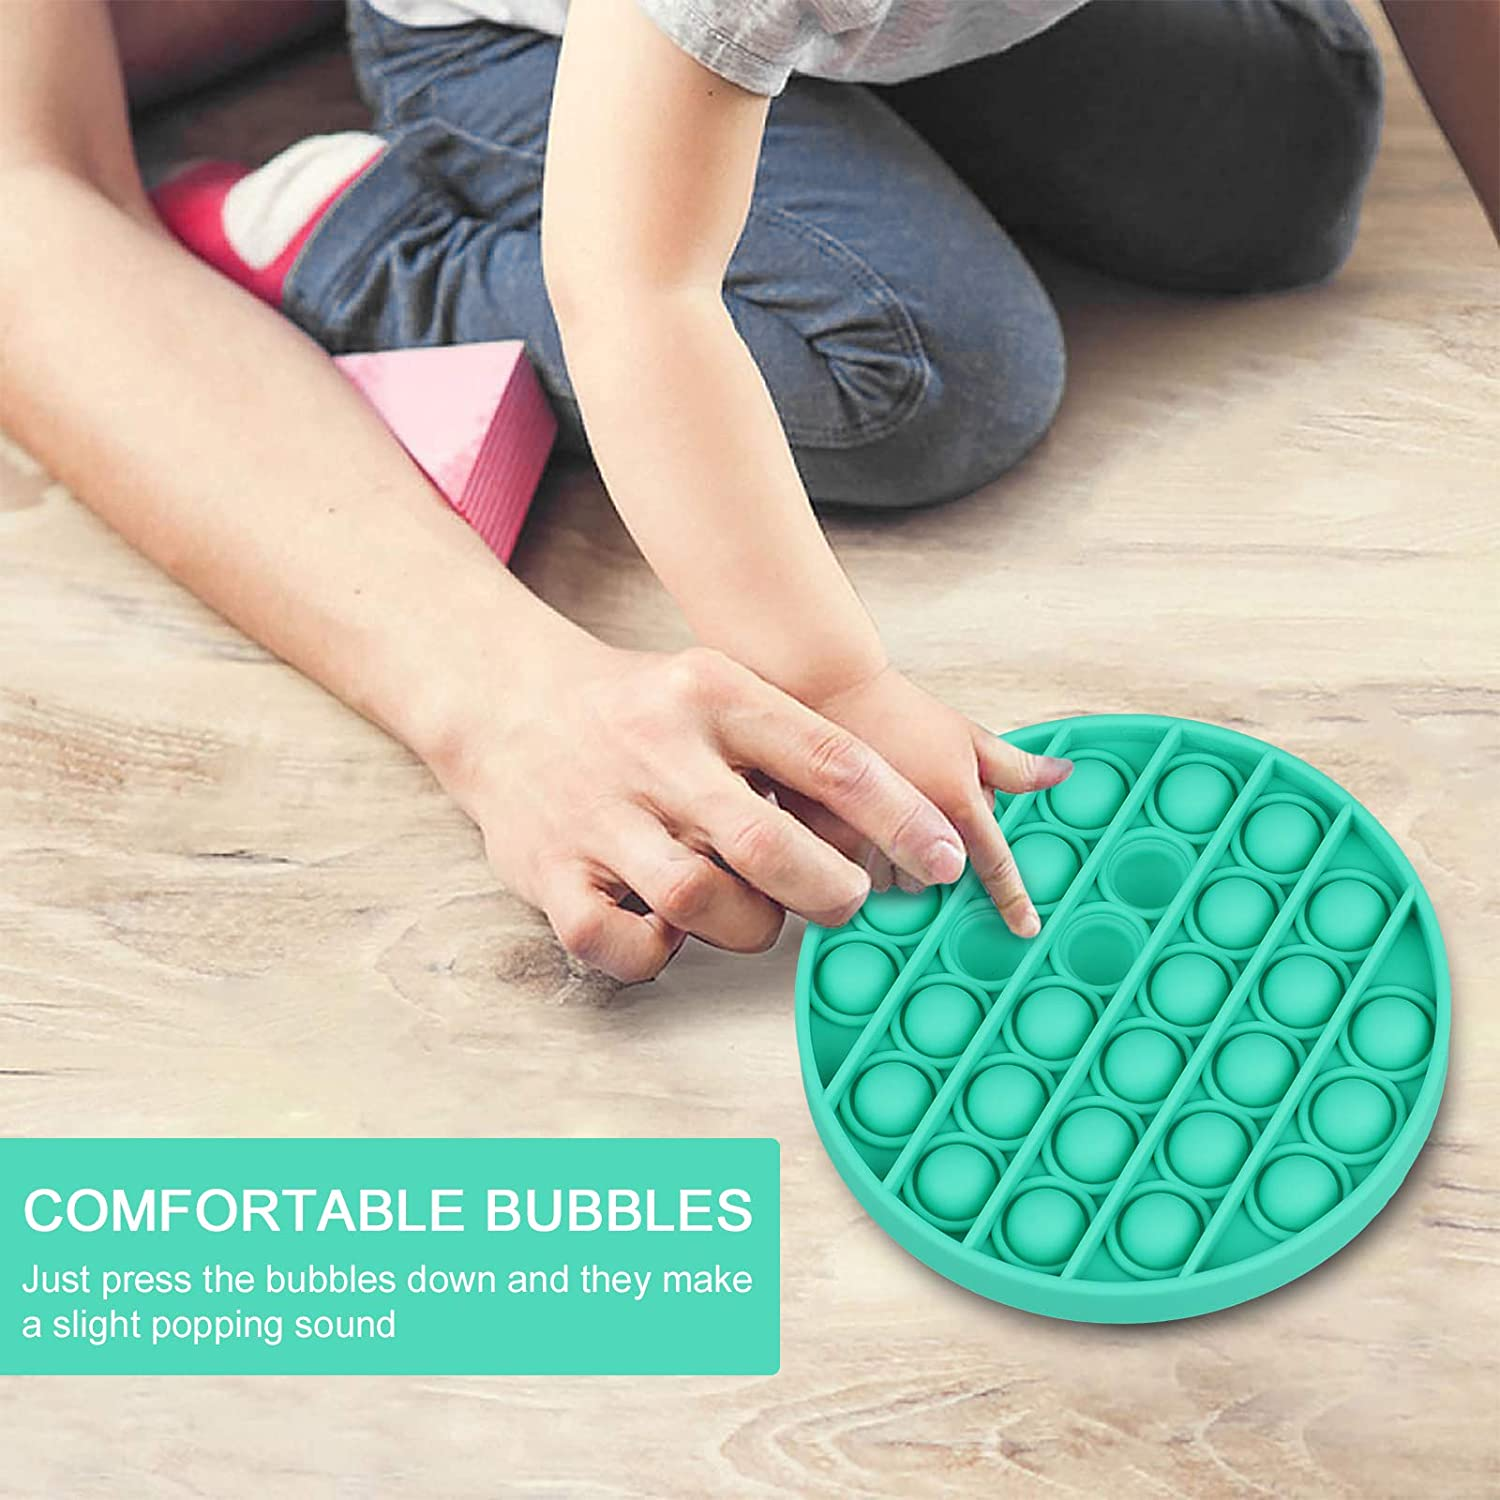 Durable Squeeze Sensory Toy for Training Logical Thinking/Soft Silicone for Anxiety Stress Push Pop Bubble Sensory Fidget Toy